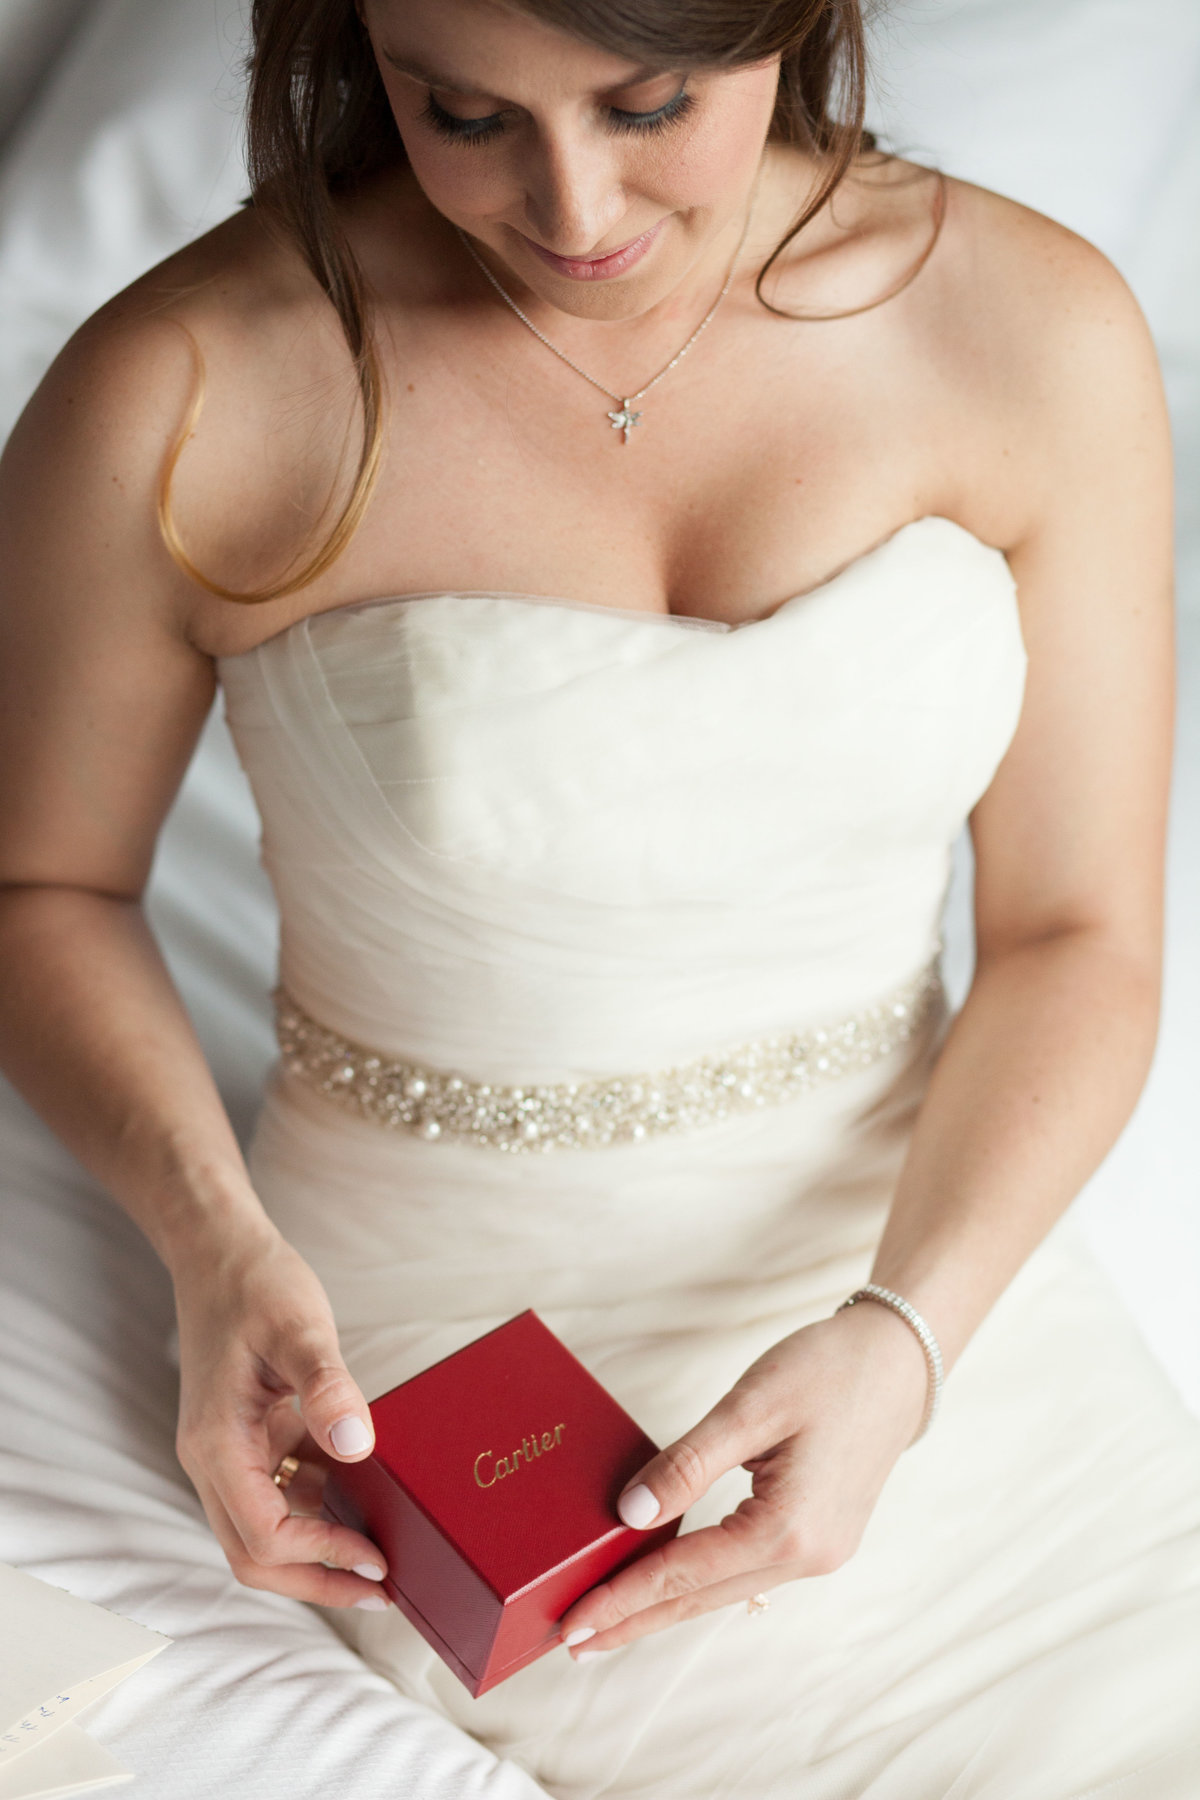 Nicole and Paul Wedding - Natalie Probst Photography 082